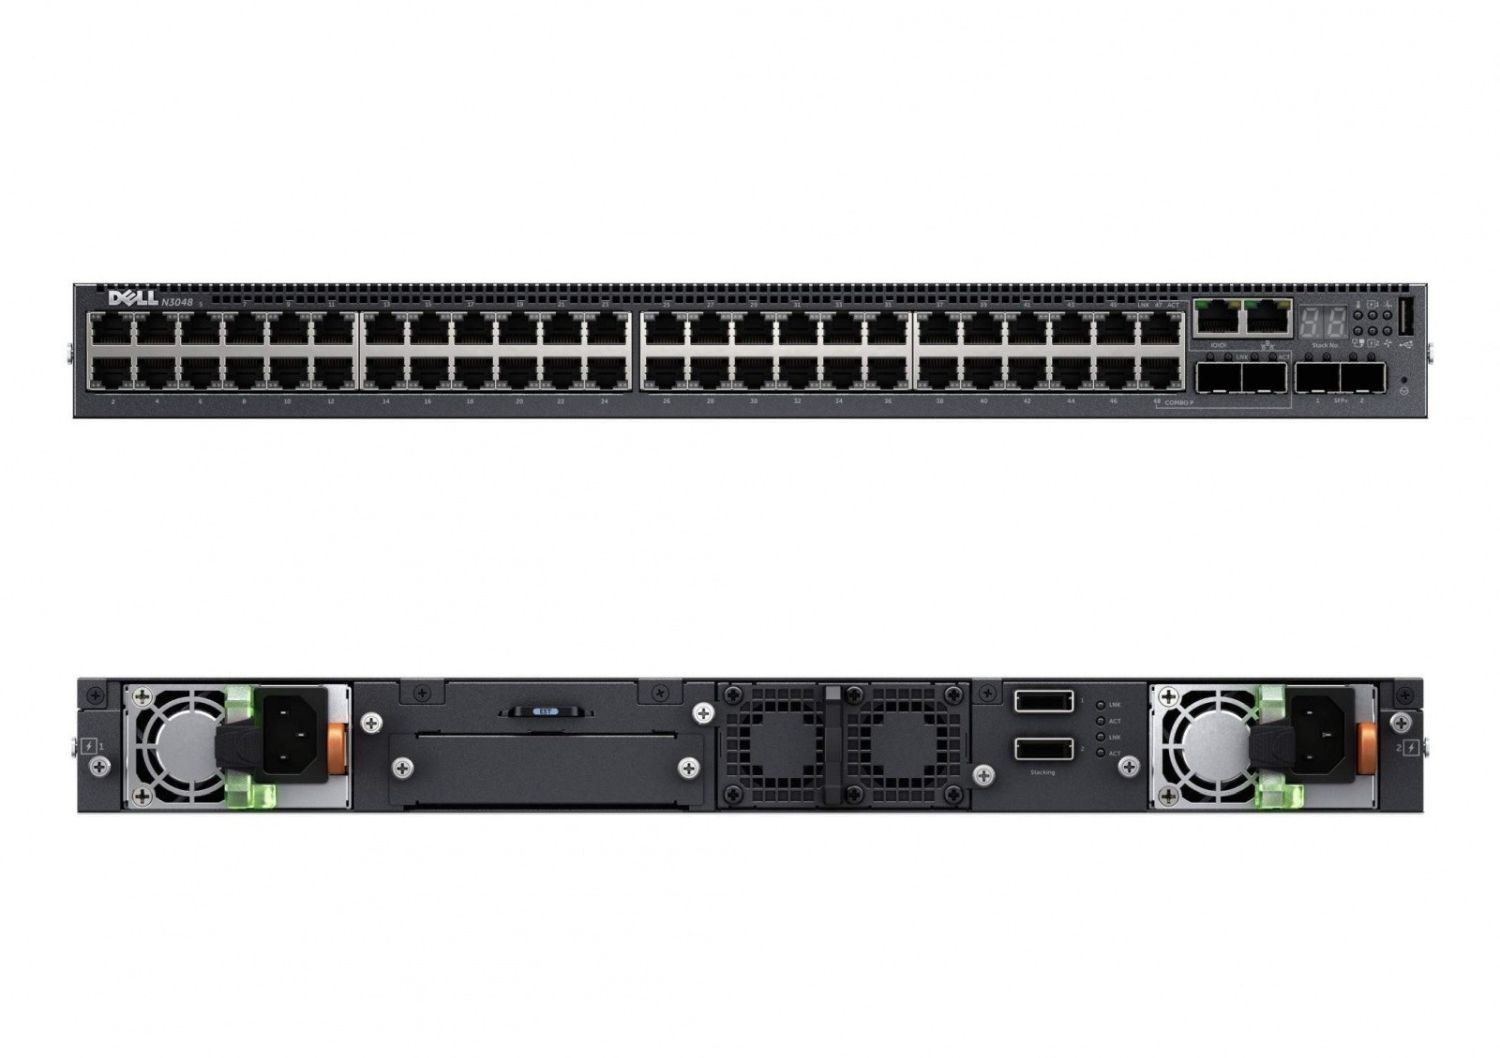 Dell Switch N2048P PoE+, 48x1GbE, 2x 10GbE SFP+ Ports, Stacking, 1x AC PSU